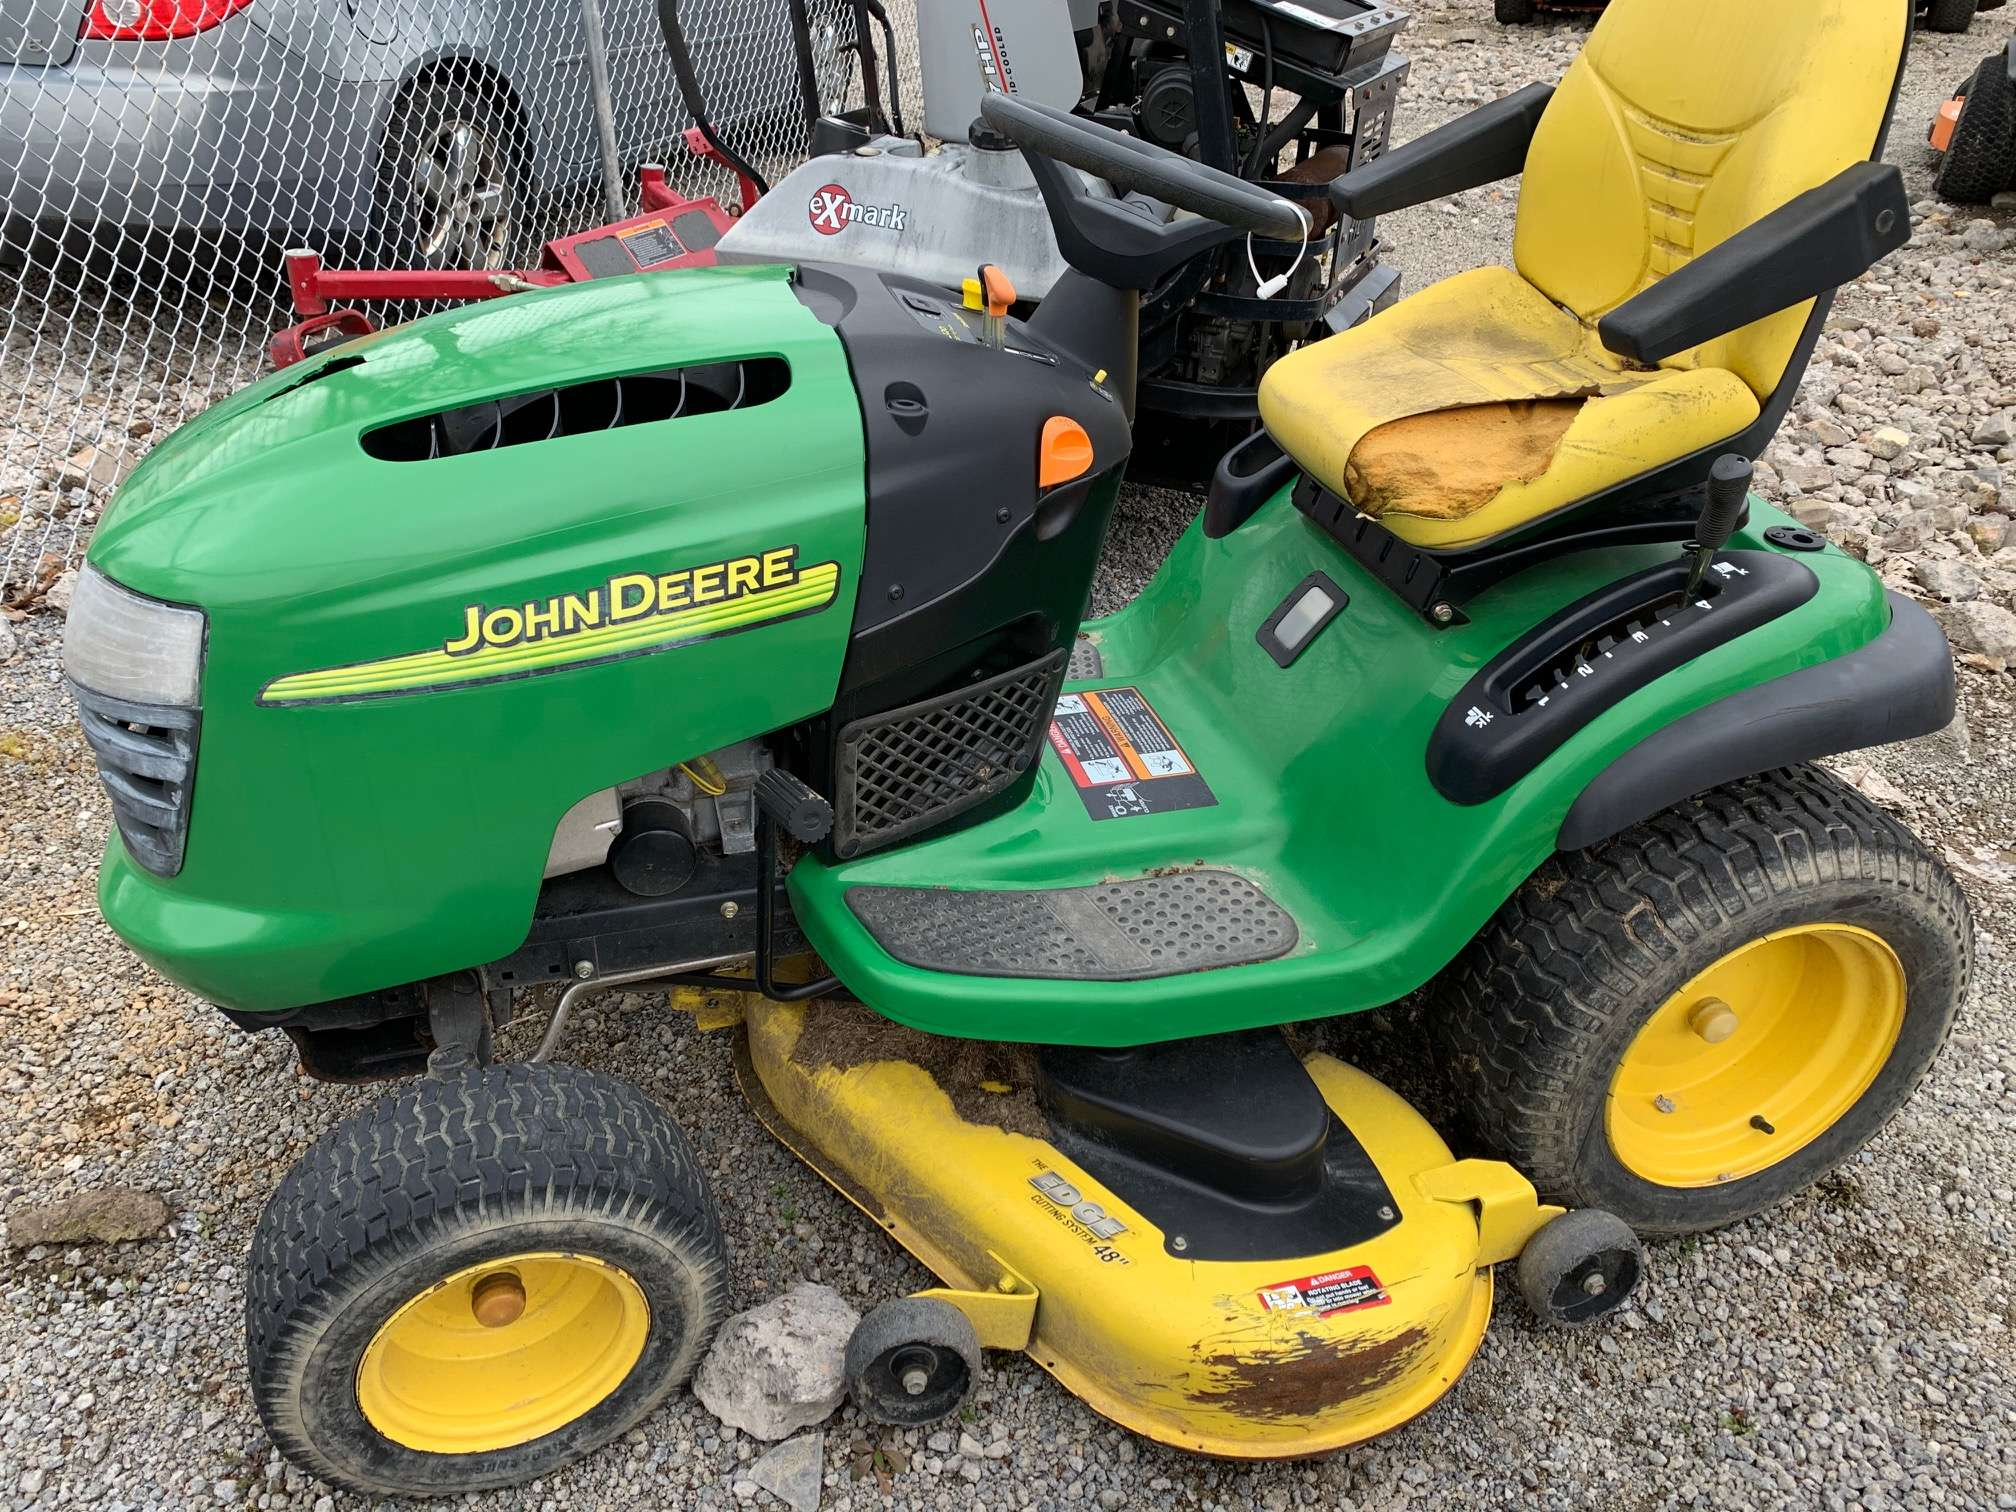 48in John Deere L120 Riding Lawn Tractor Non Running Parts Mower Gsa Equipment New Used Lawn Mowers And Mower Repair Service Canton Akron Wadsworth Ohio